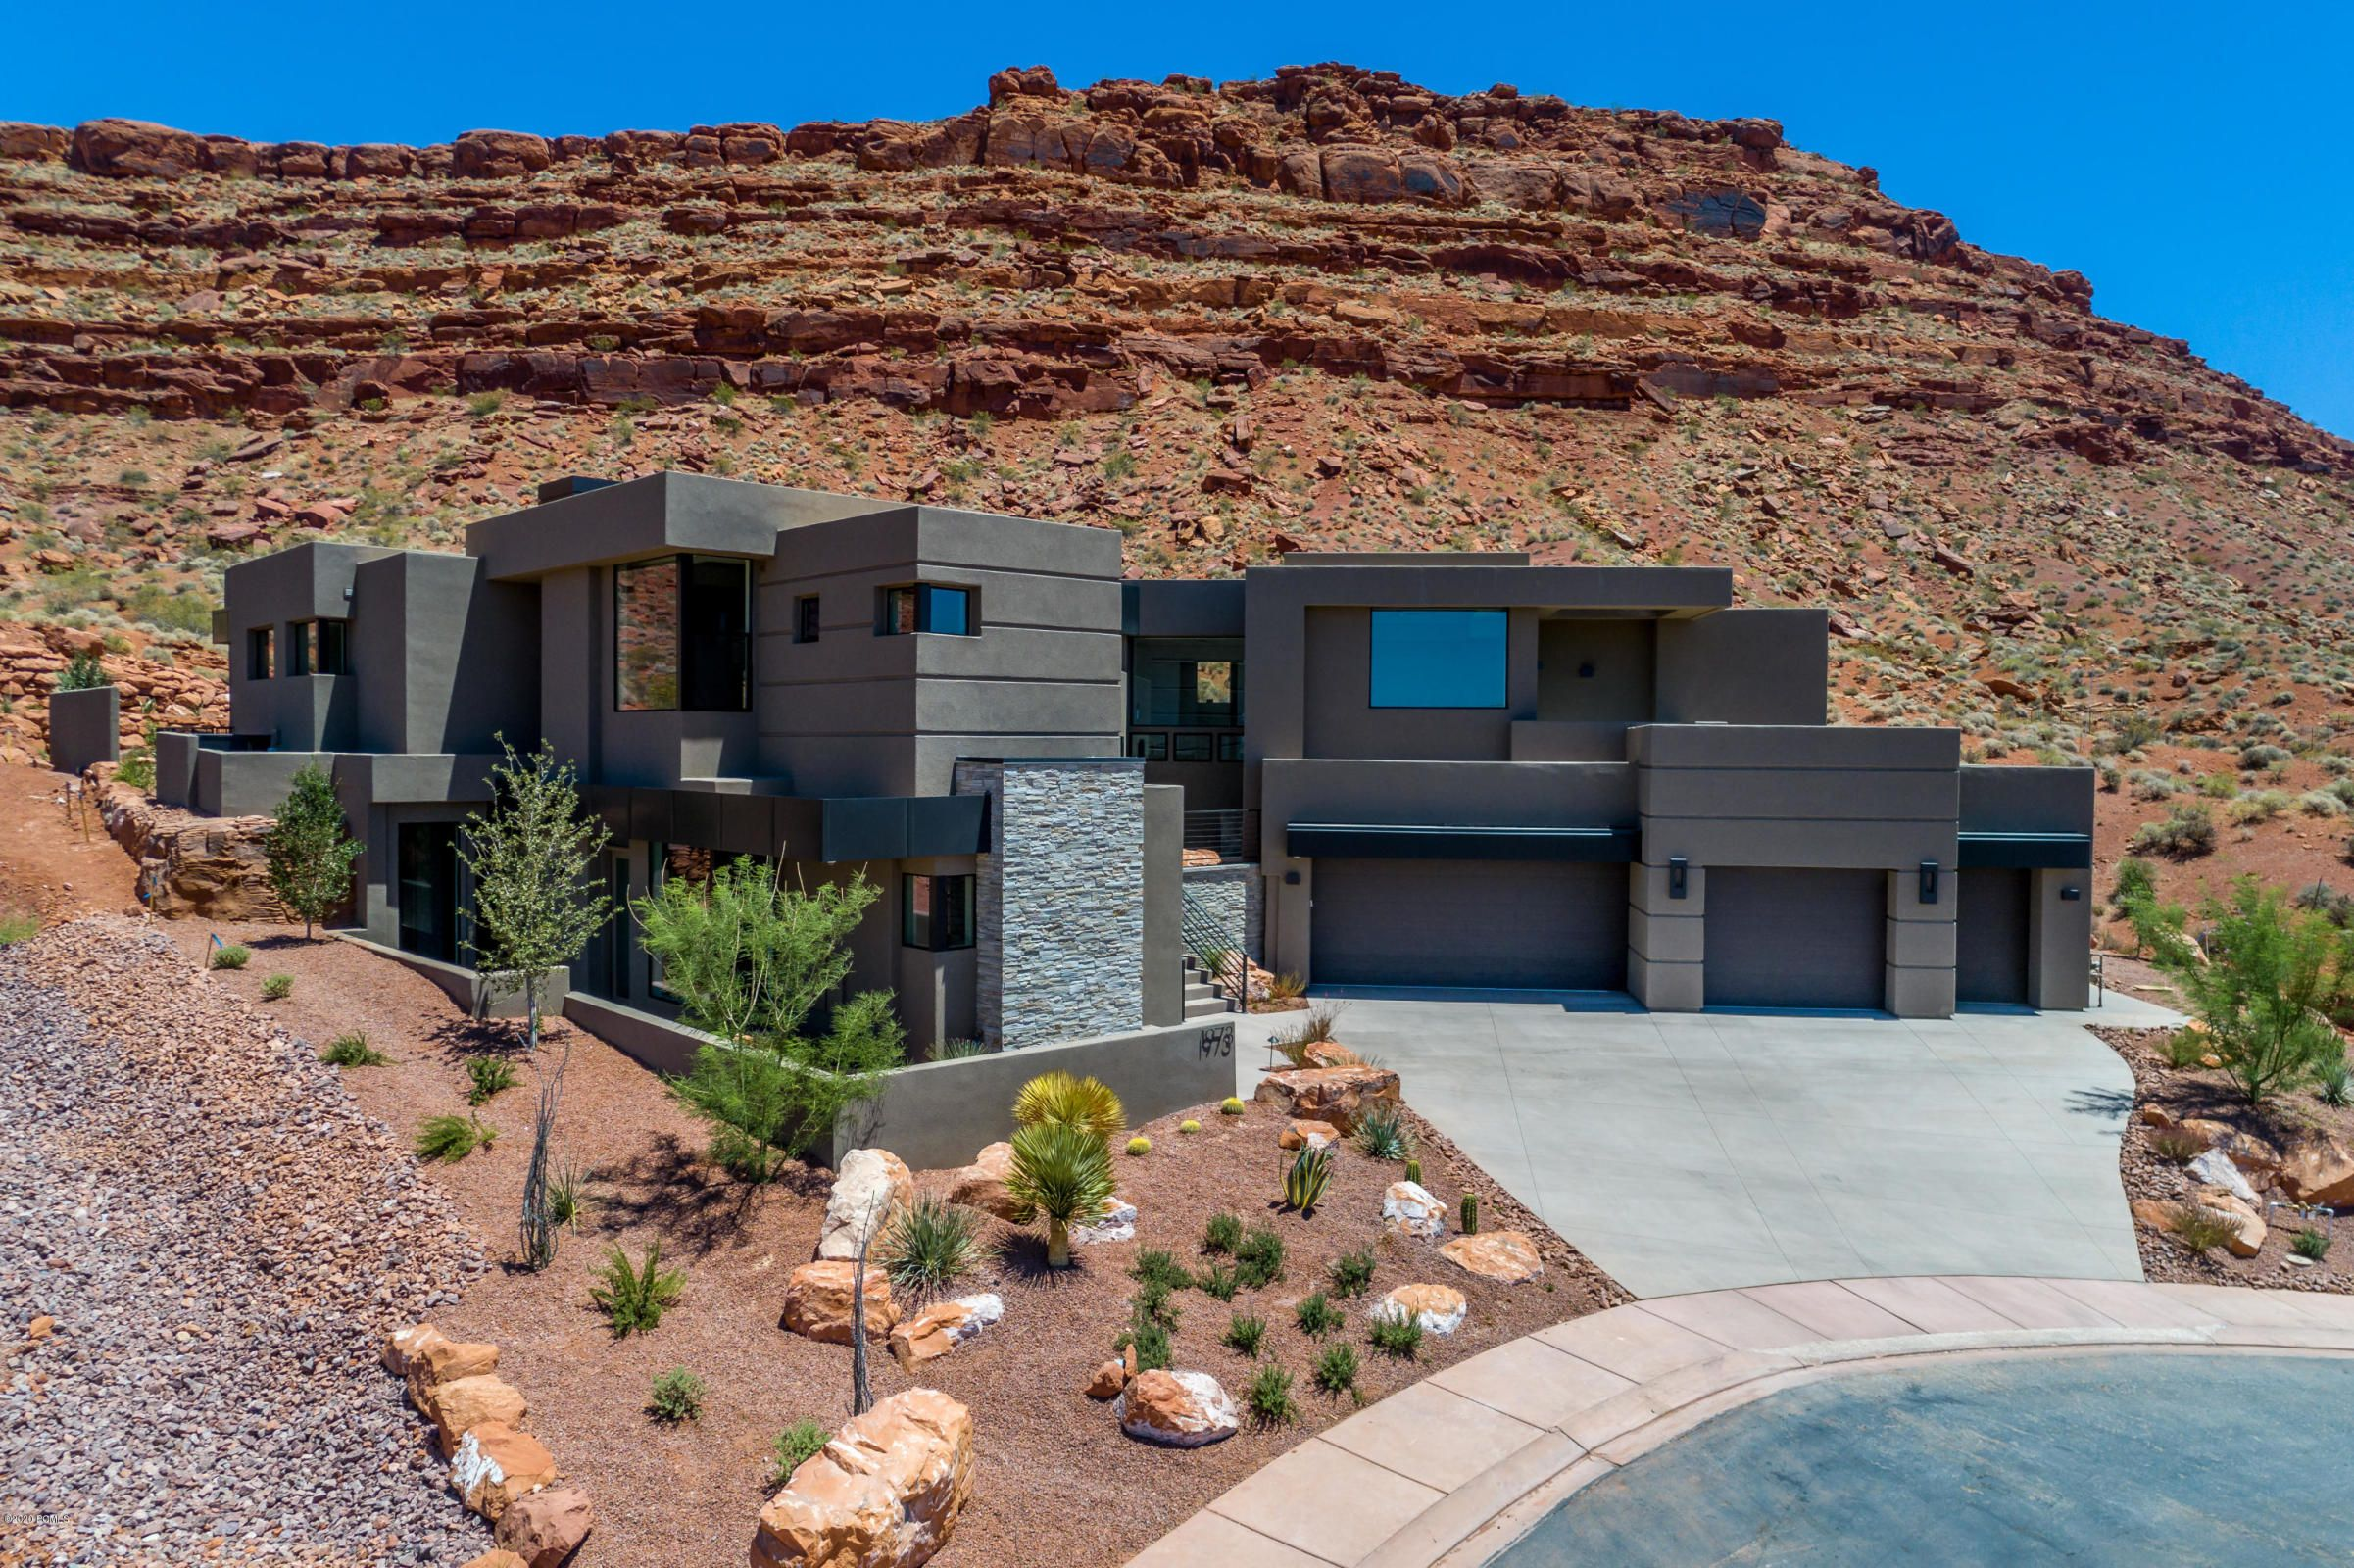 This elegant home located in the Vistas in Entrada, backs up to the expansive open space Desert Tortoise Reserve with full privacy and unobstructed views of Kachina Cliffs. #WindermereUtah #UtahHomes #RealEstate #UtahRealEstate #StGeorge #HomeExterior #Modern #Entrada #DesertHome #Desert #UtahDesert #Contemporary #HomeDesign #Architecture #ArchDaily #Arch_Daily